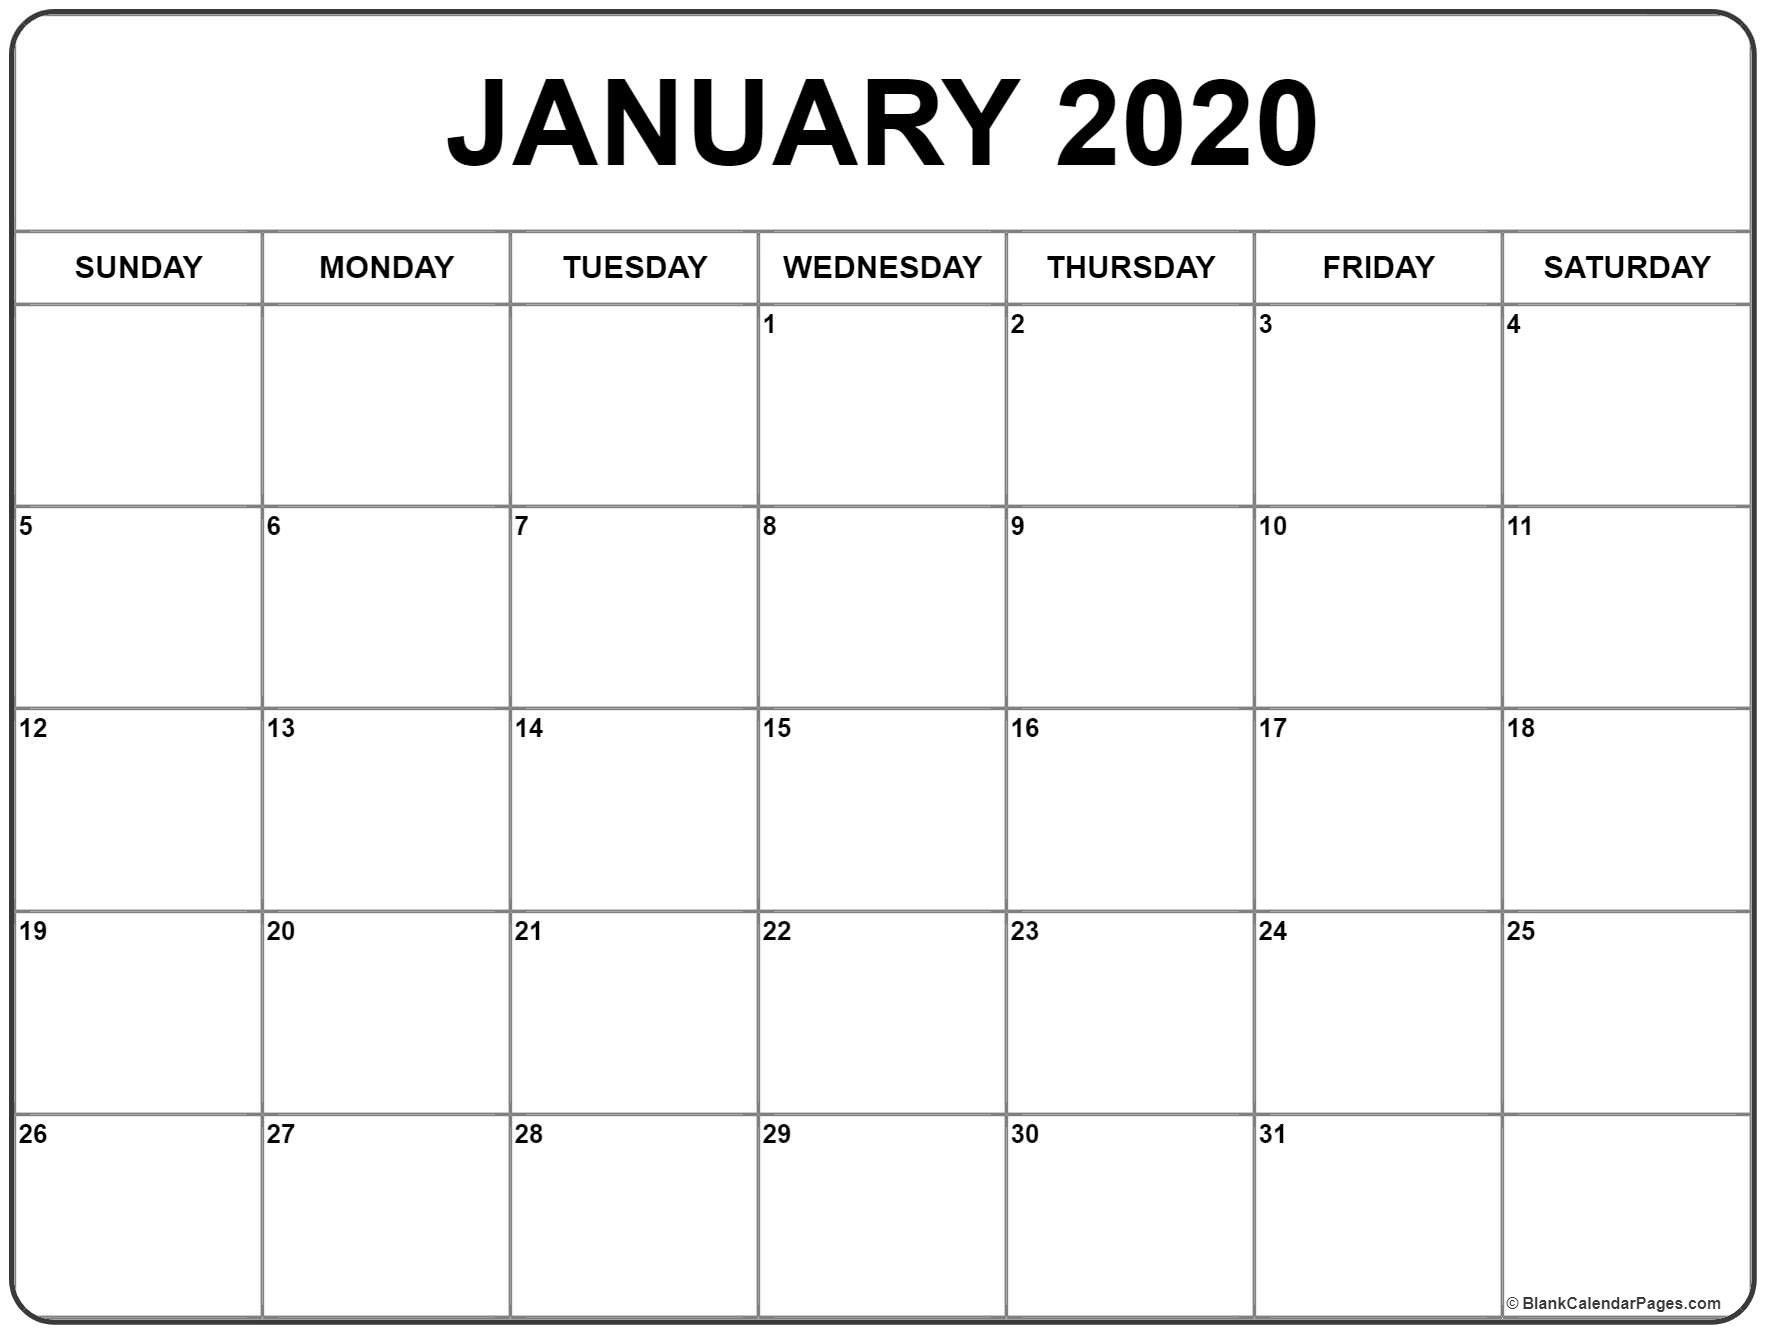 New Free Printable Blank Calendars 2020 | Monthly Calendar-Monthly Calendar Template 2020 Printable Blank Starting Monday